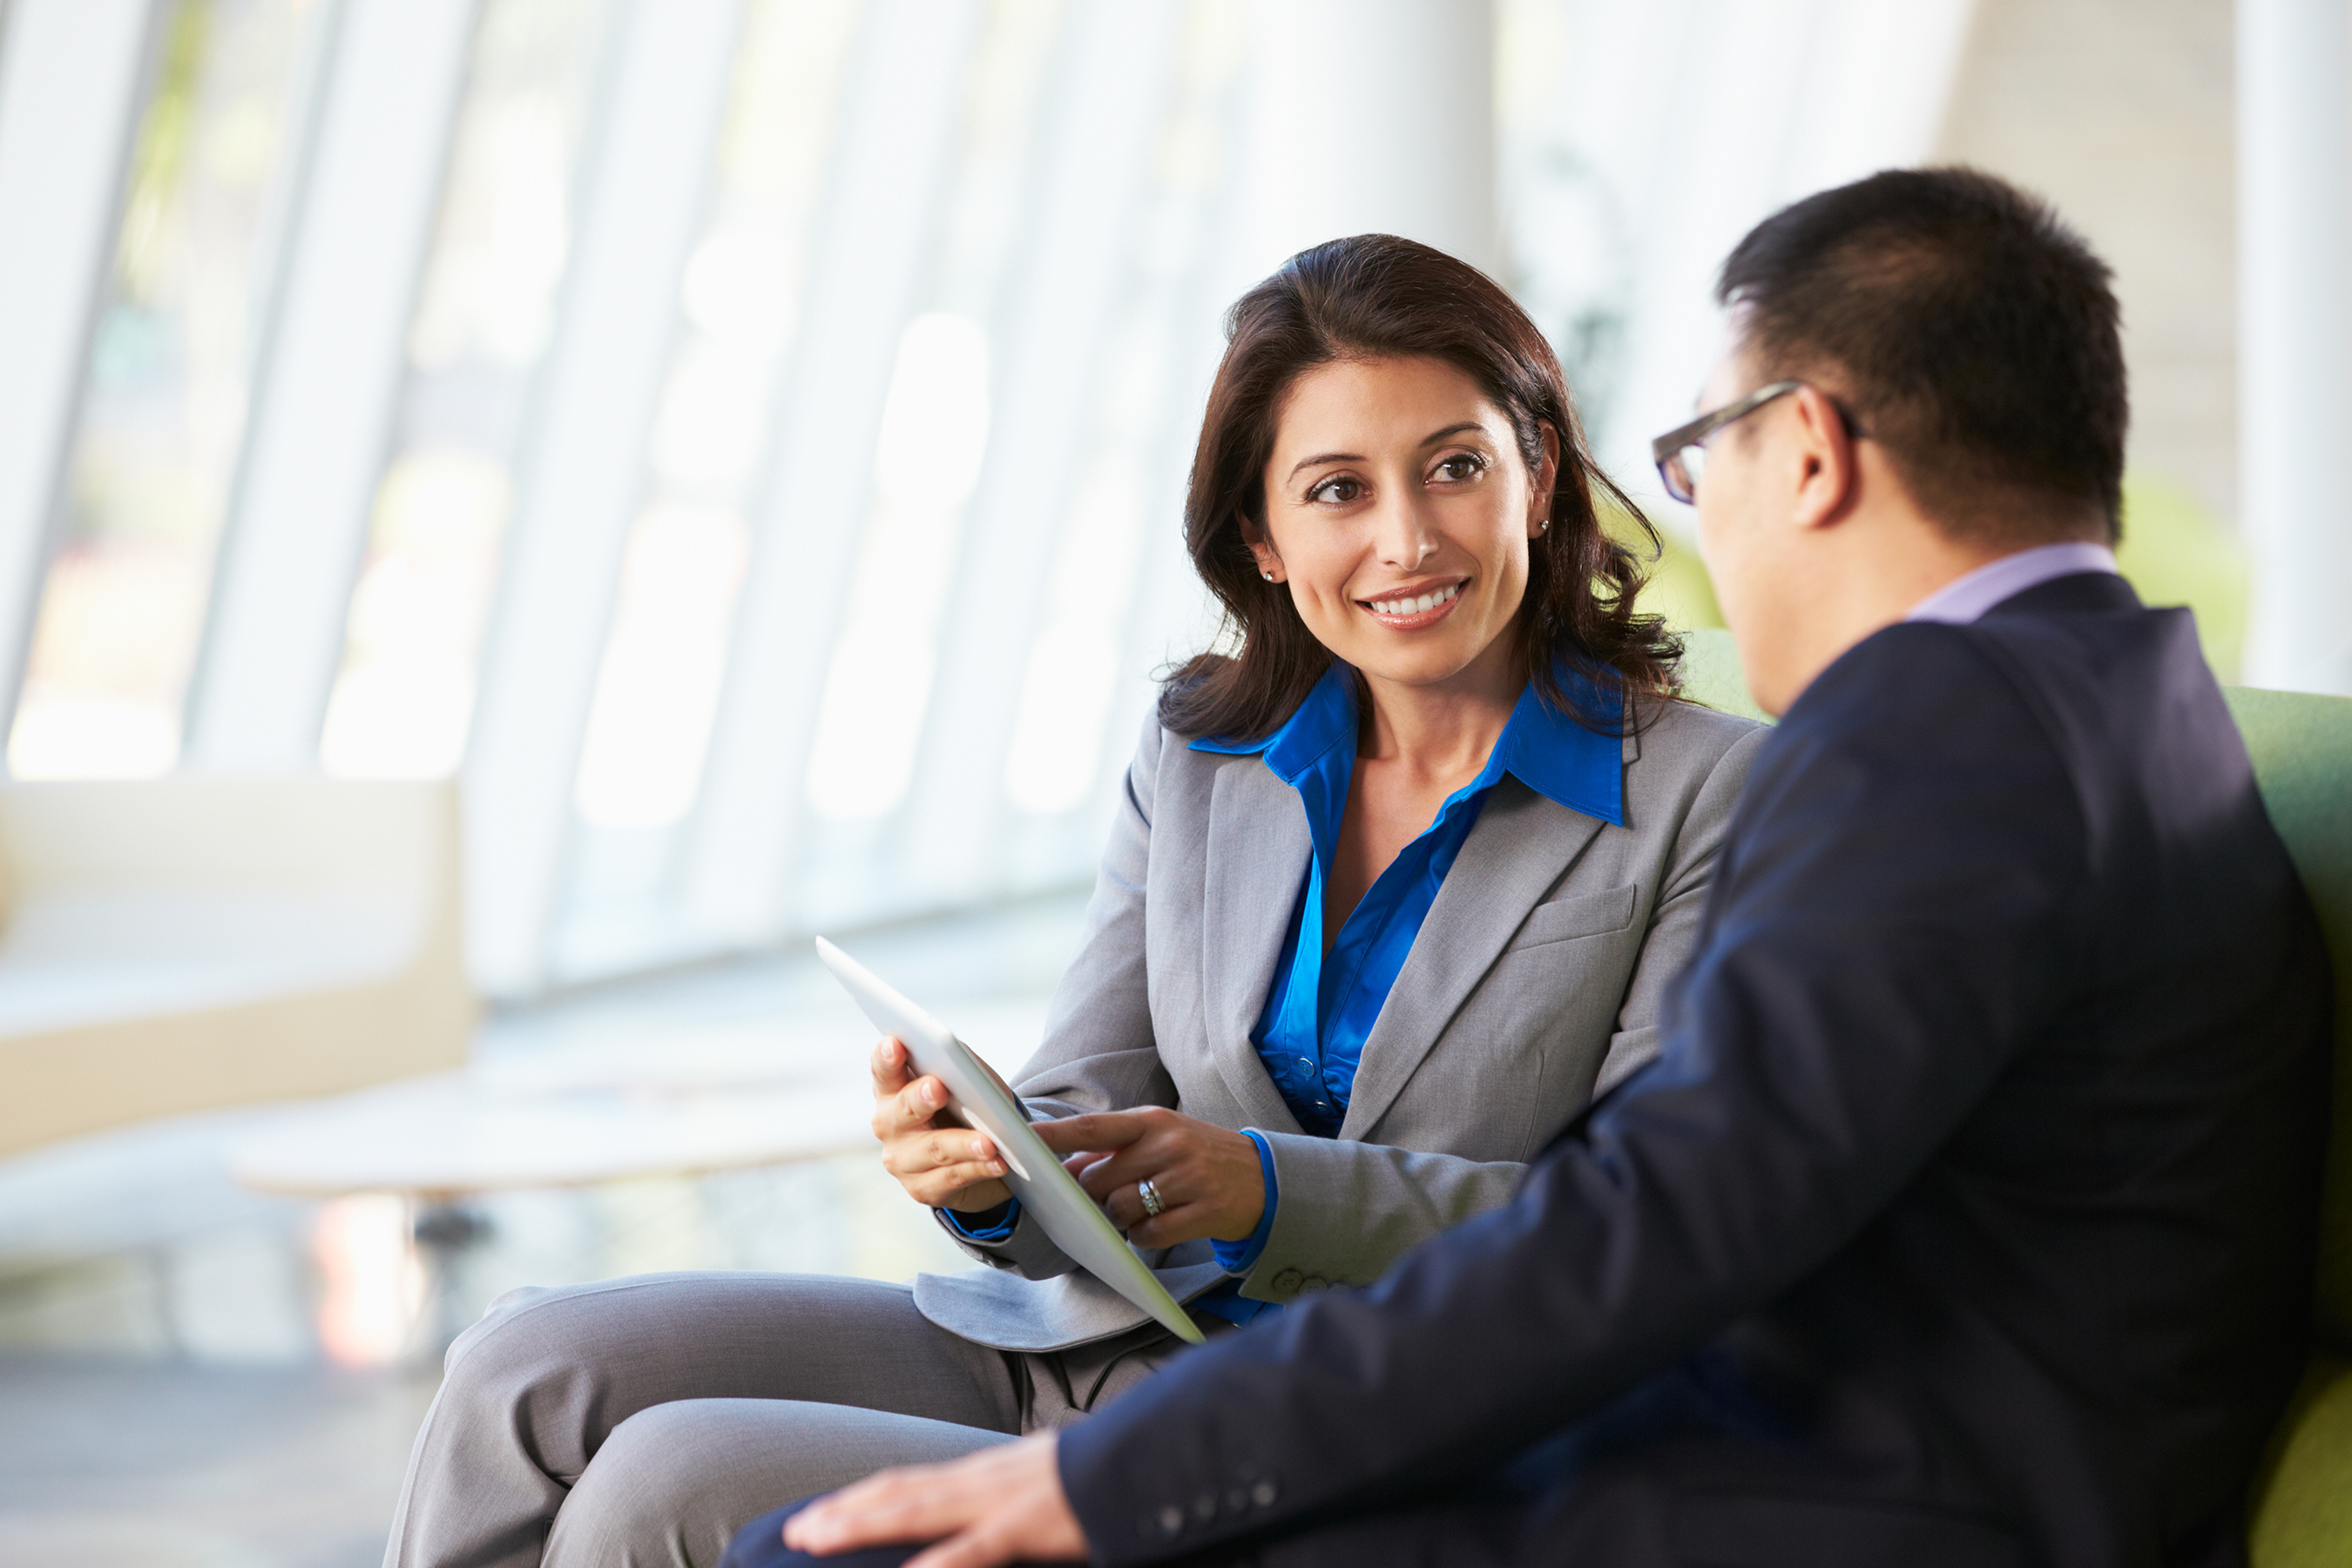 woman in suit with tablet looking at man in suit